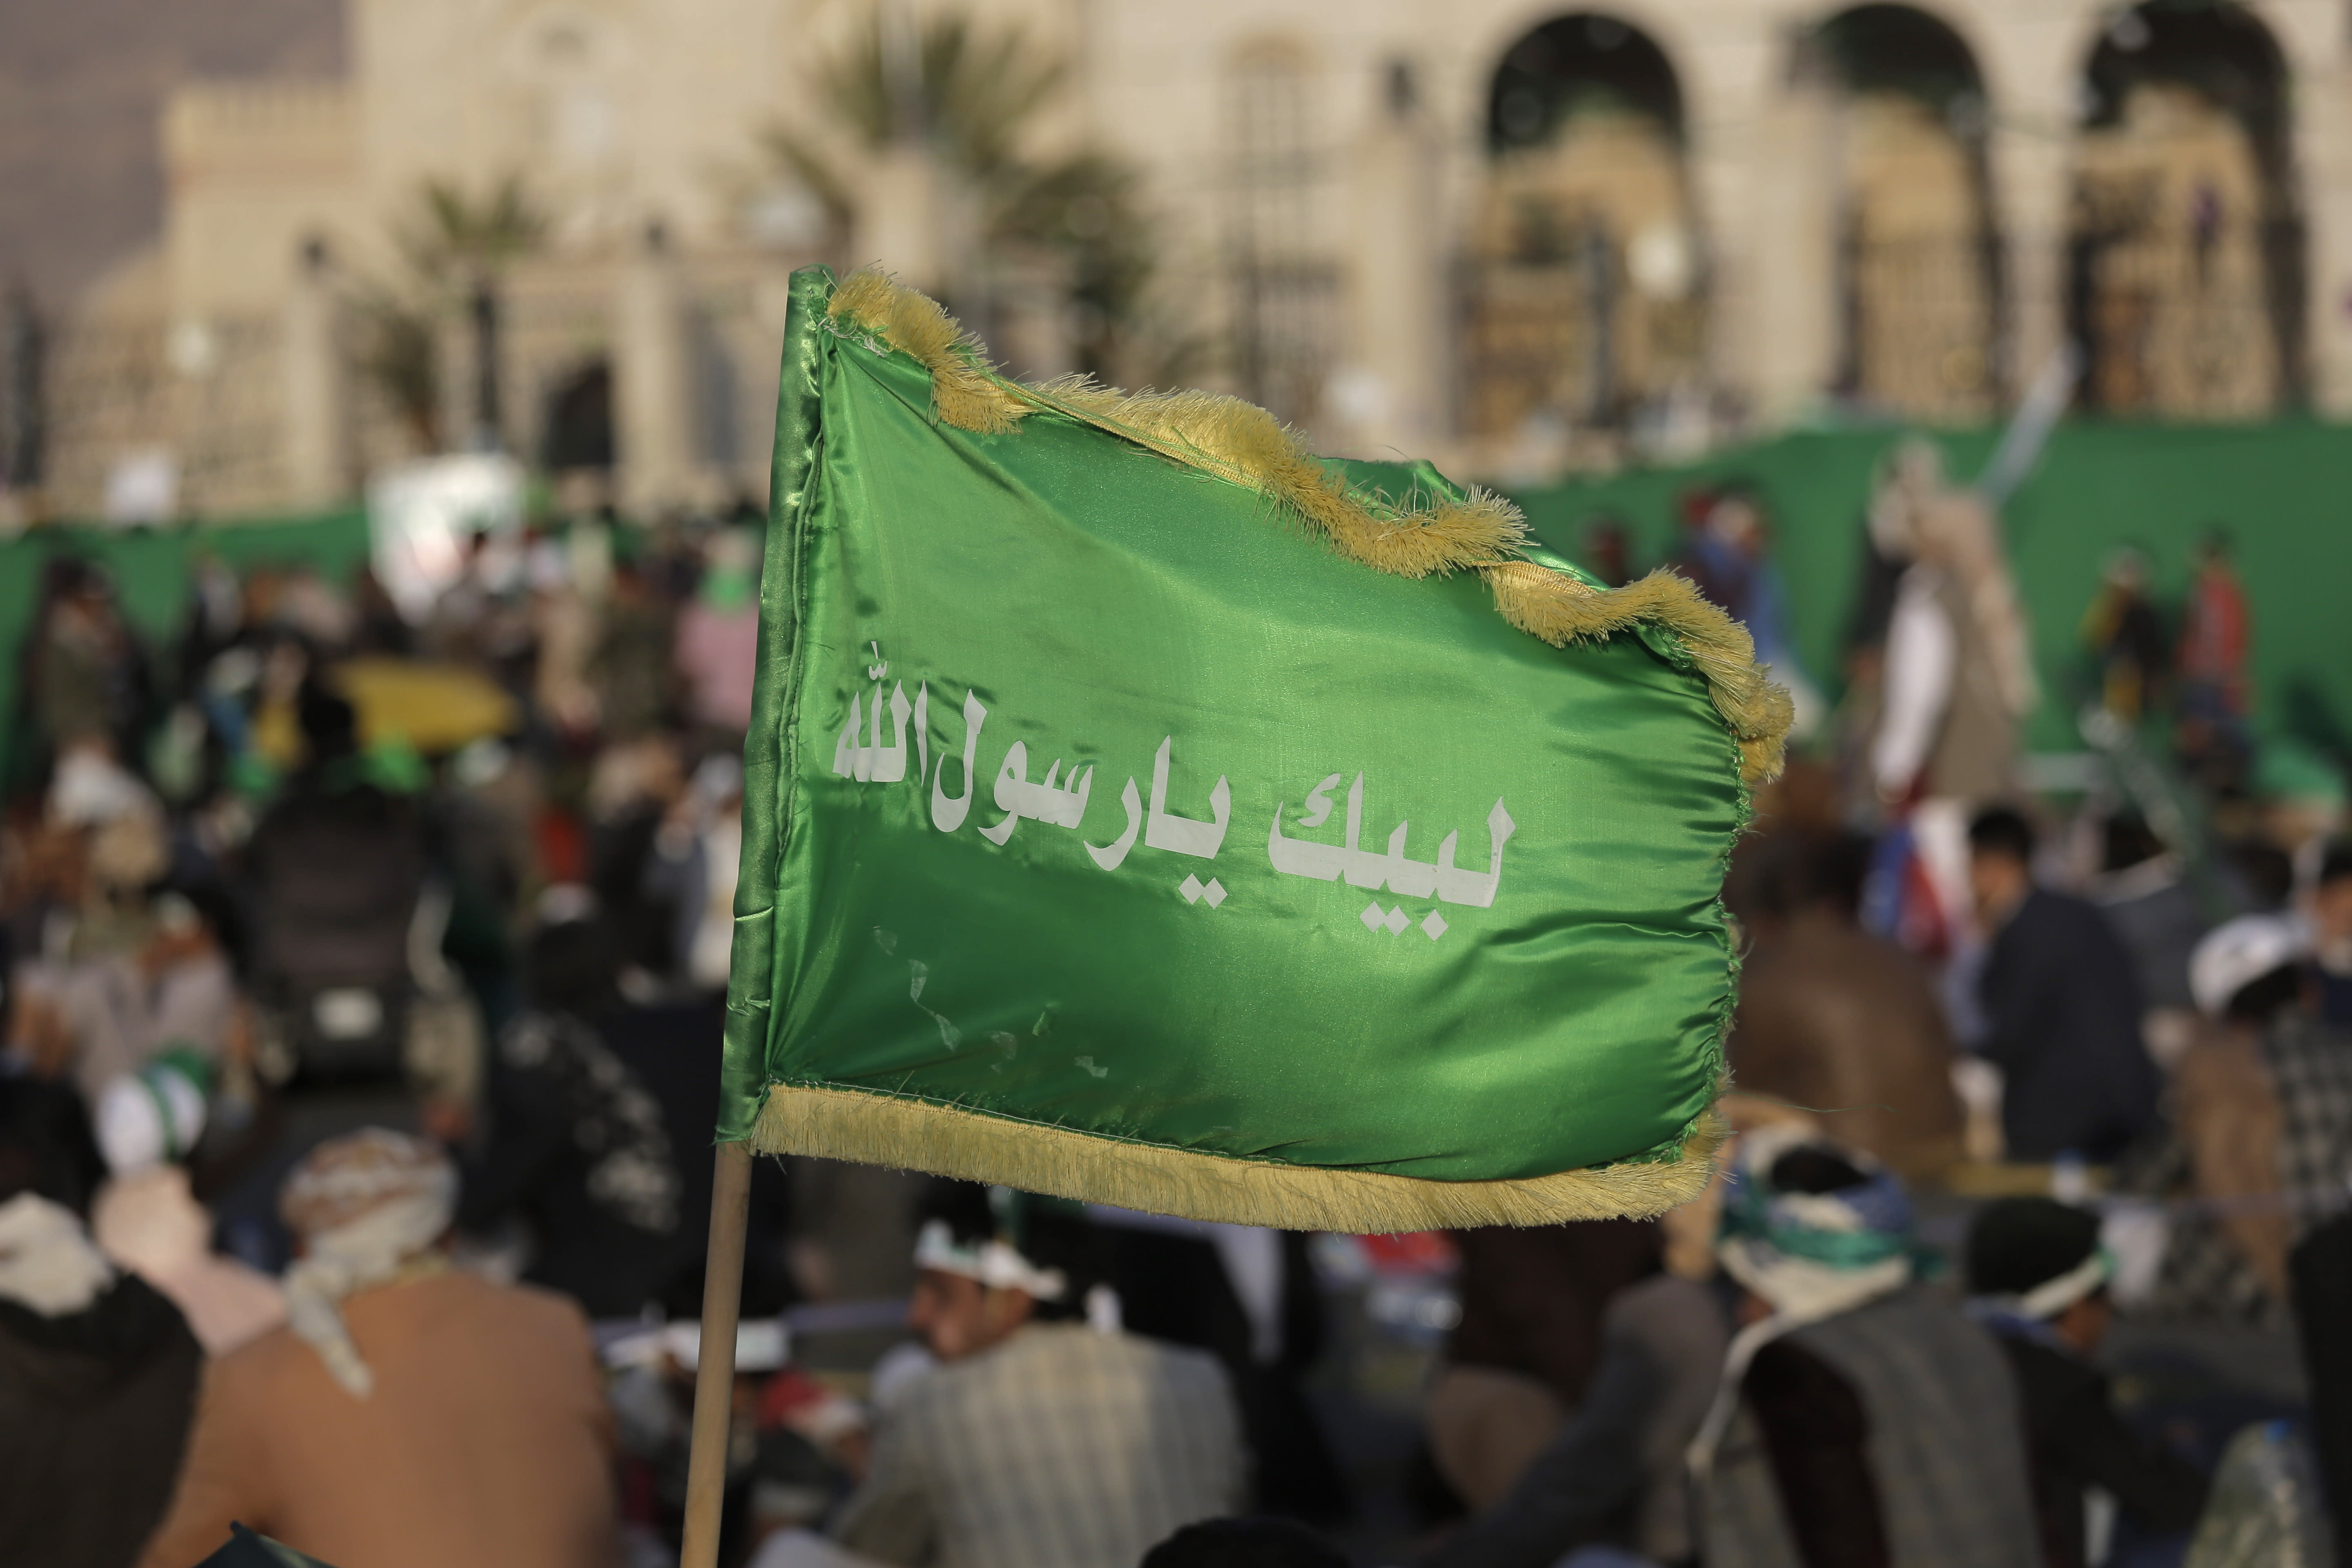 """FILE - In this Nov. 9, 2019 file photo, a supporter of Shiite rebels, known as Houthis, holds a banner with Arabic writing that reads, """"at your order, oh messenger of Allah,"""" during a celebration of Mawlid al-Nabi the birth of Islam's prophet Muhammad in Sanaa, Yemen. A satellite TV channel run by Yemen's Houthi rebels has broadcast on Thursday, Oct. 15, 2020, the start of a long-awaited prisoner exchange between the country's warring sides. (AP Photo/Hani Mohammed, File)"""